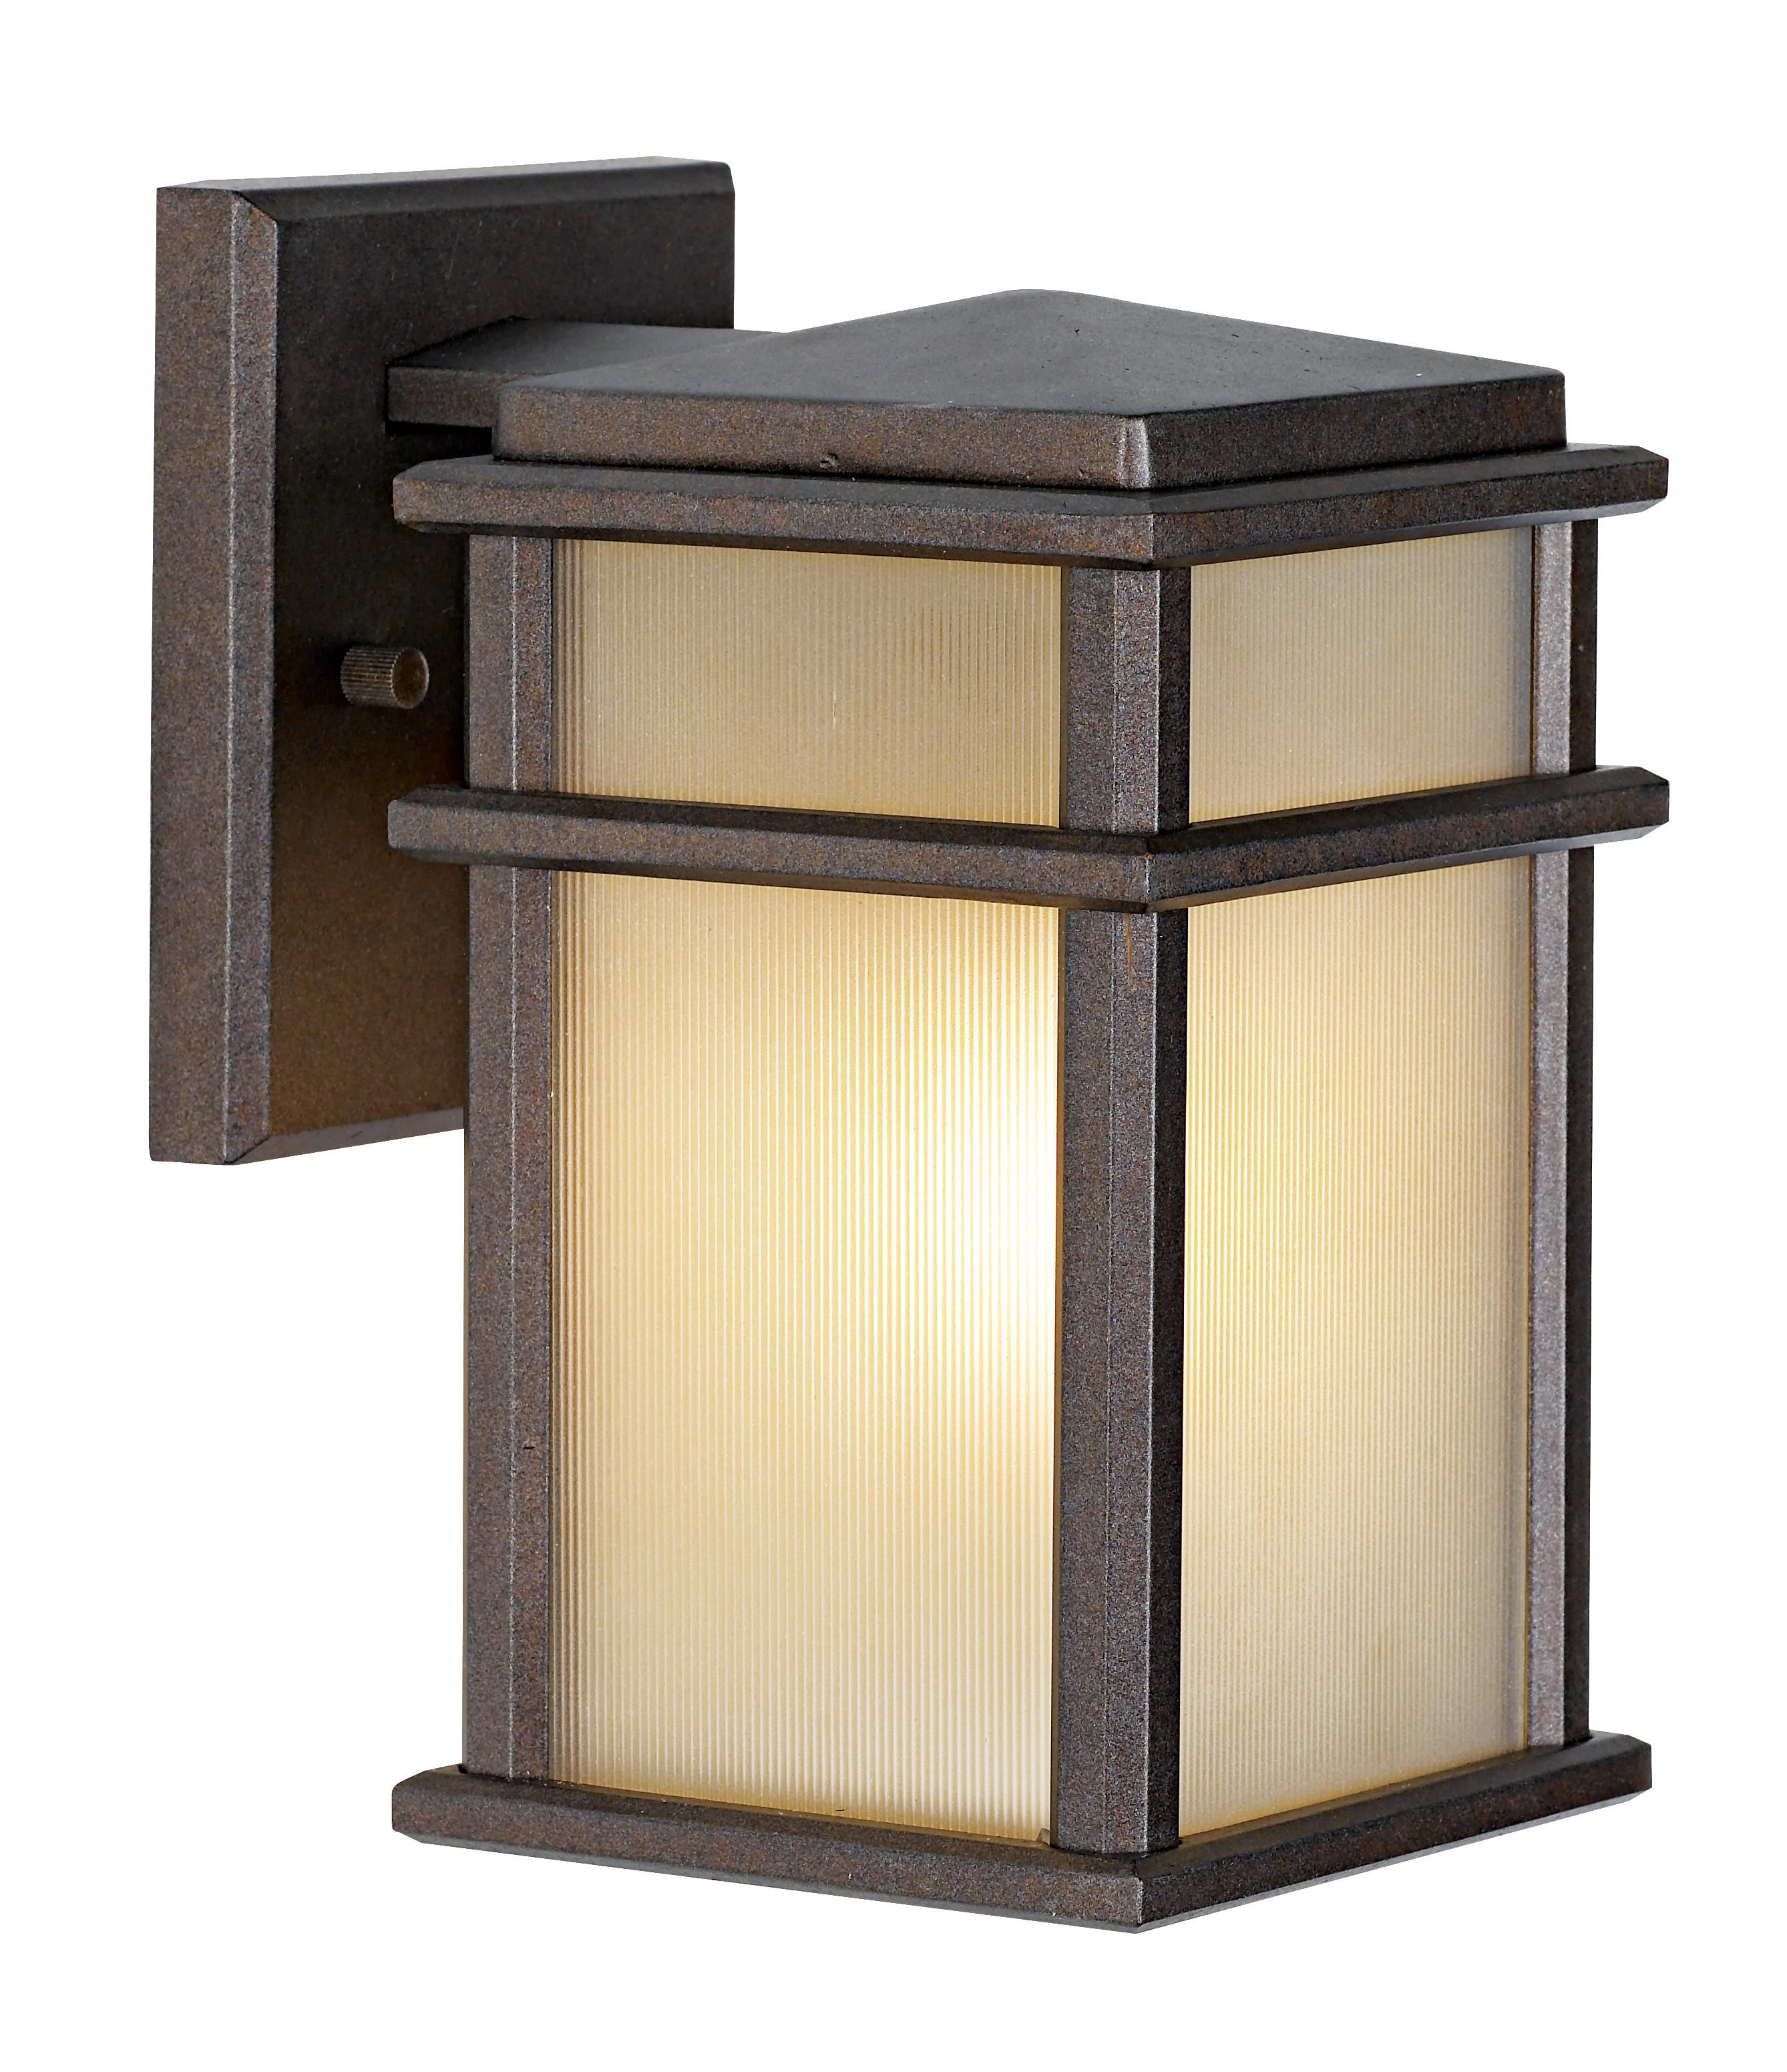 Feiss Mission Lodge Bronze Wall Mount 9 High Lantern 16963 Lamps Plus